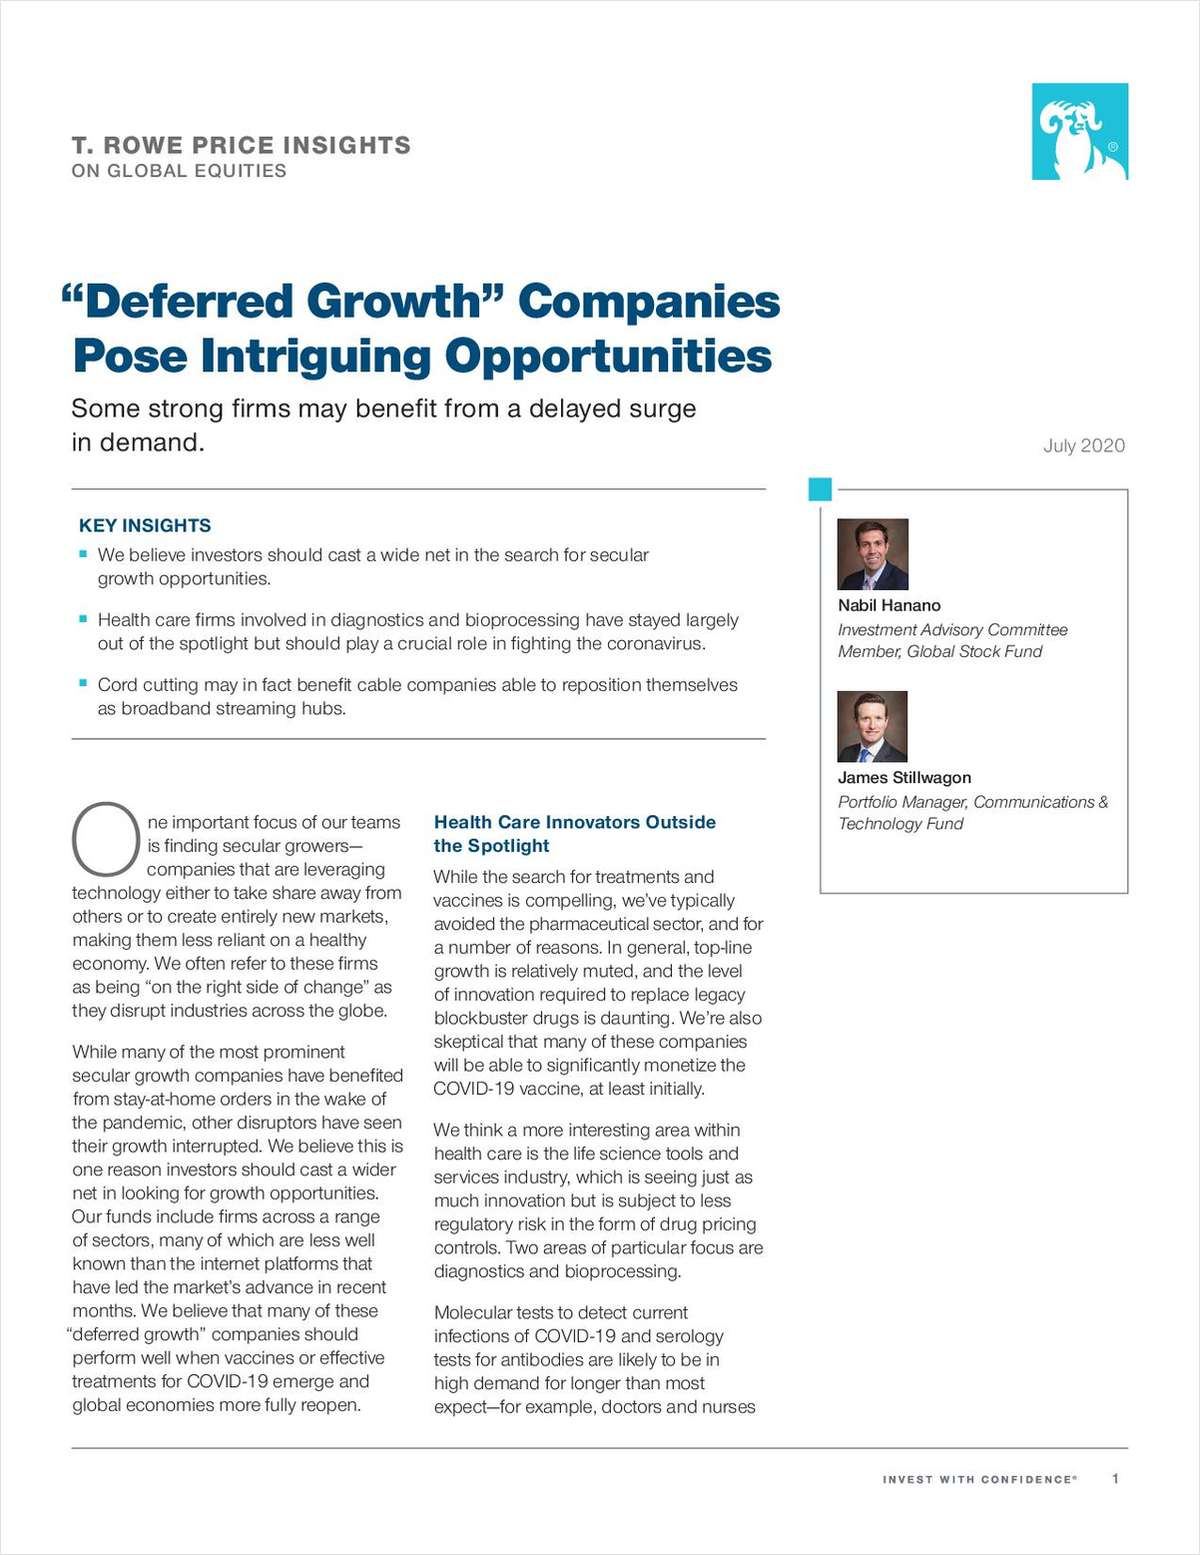 'Deferred Growth' Companies Pose Intriguing Opportunities